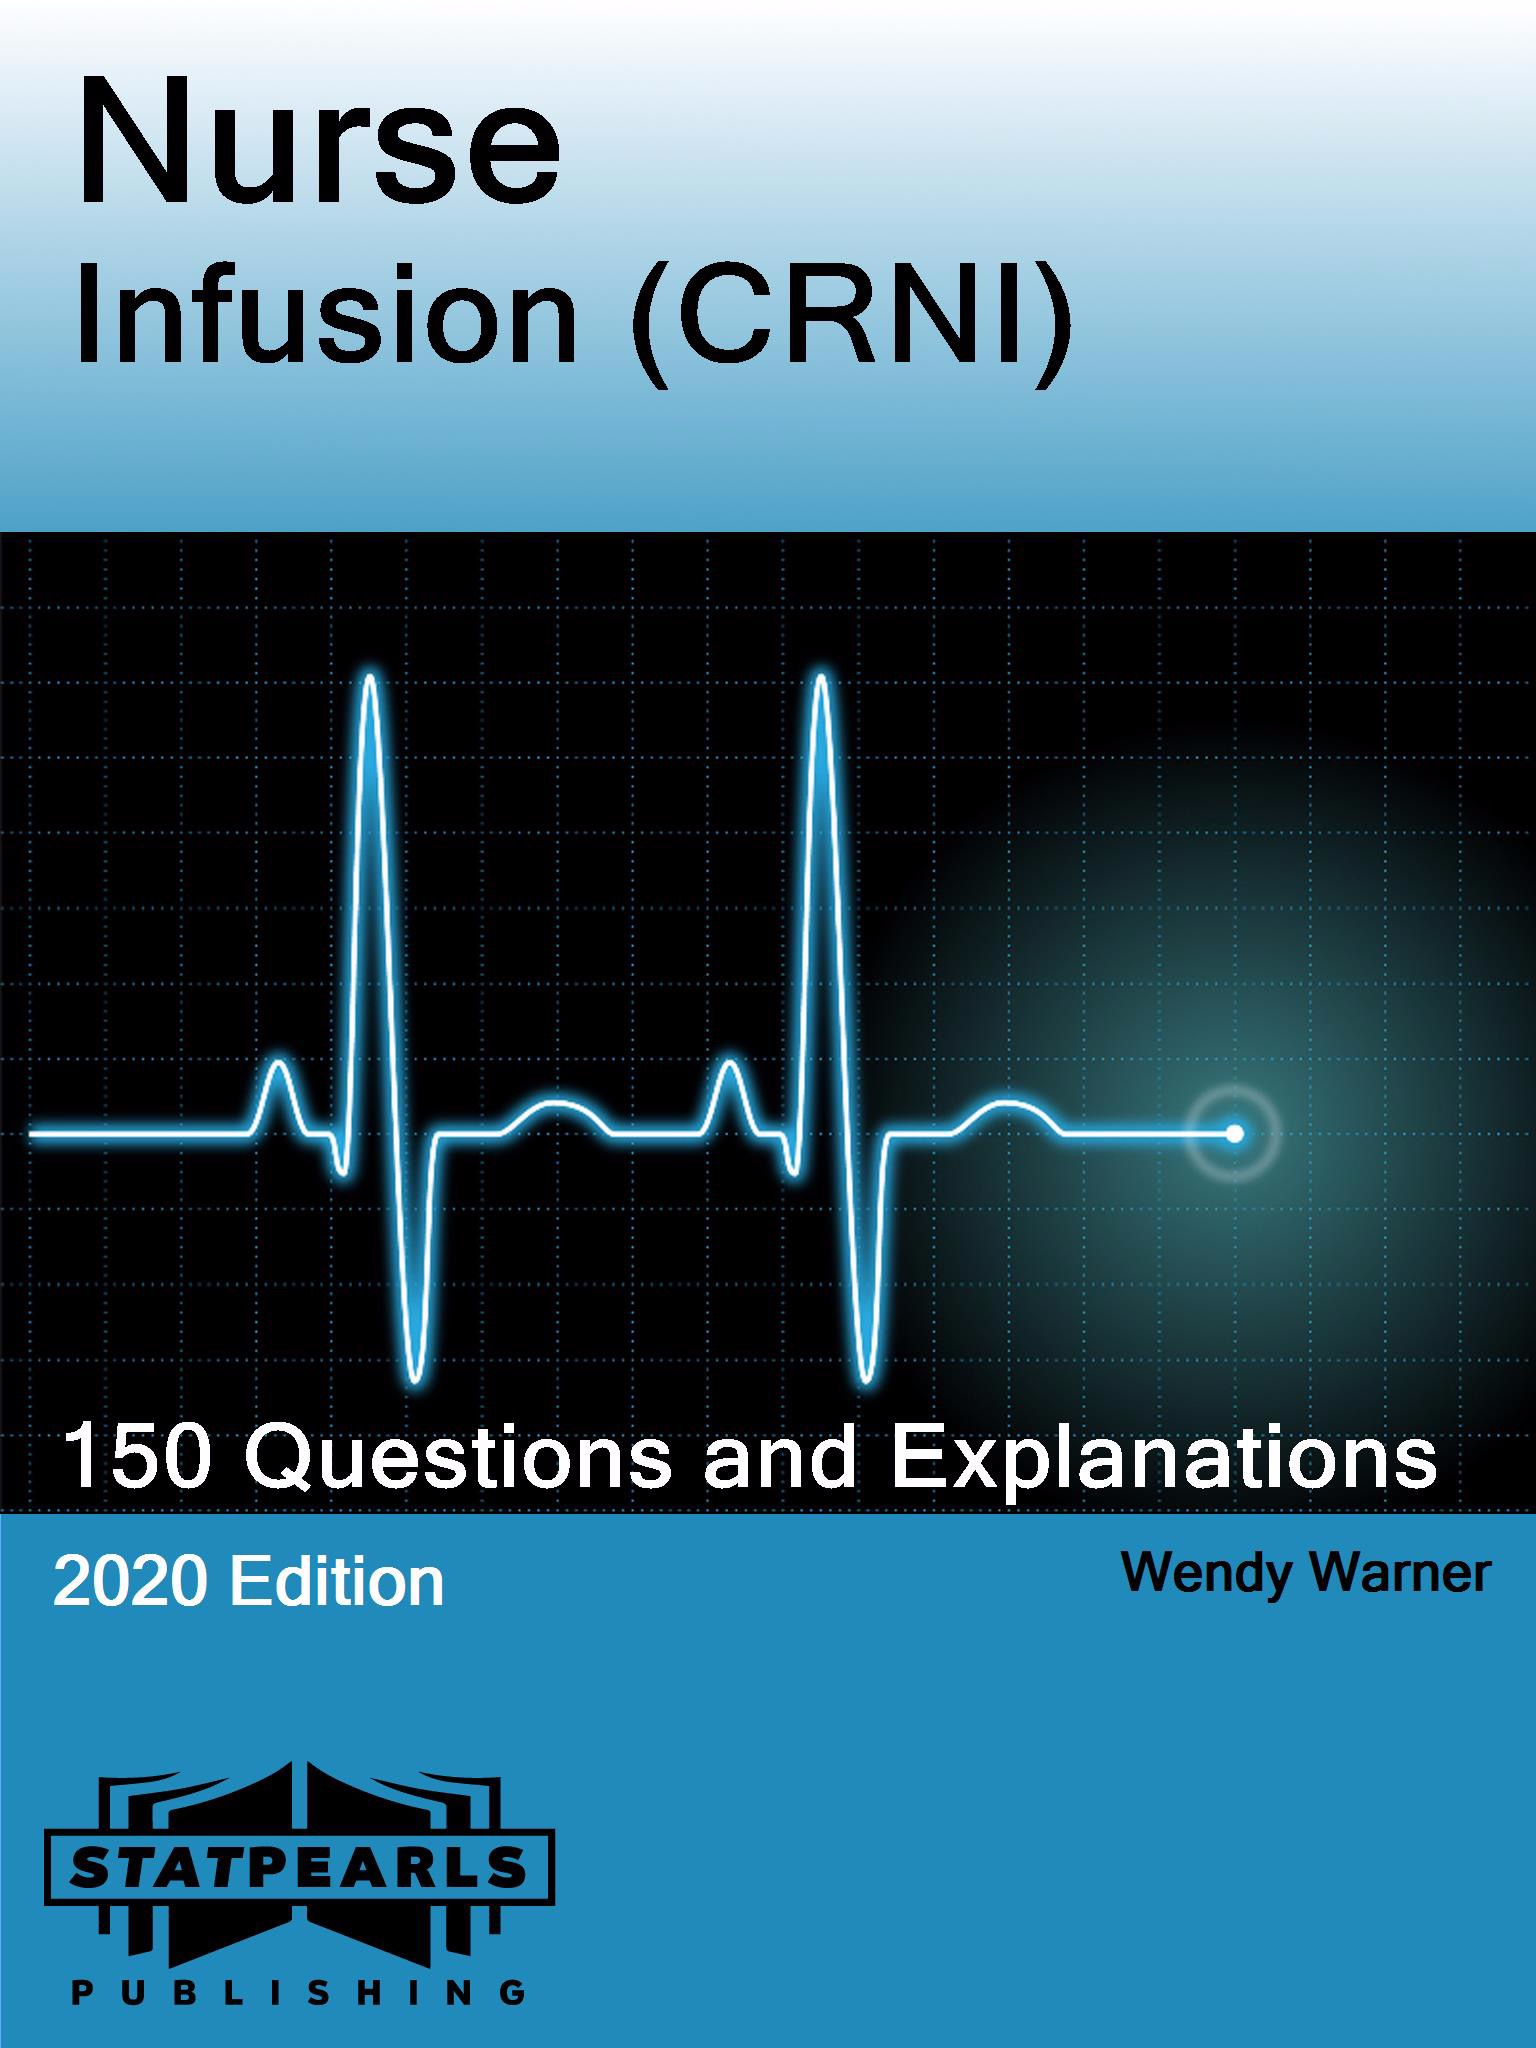 Nurse Infusion (CRNI)